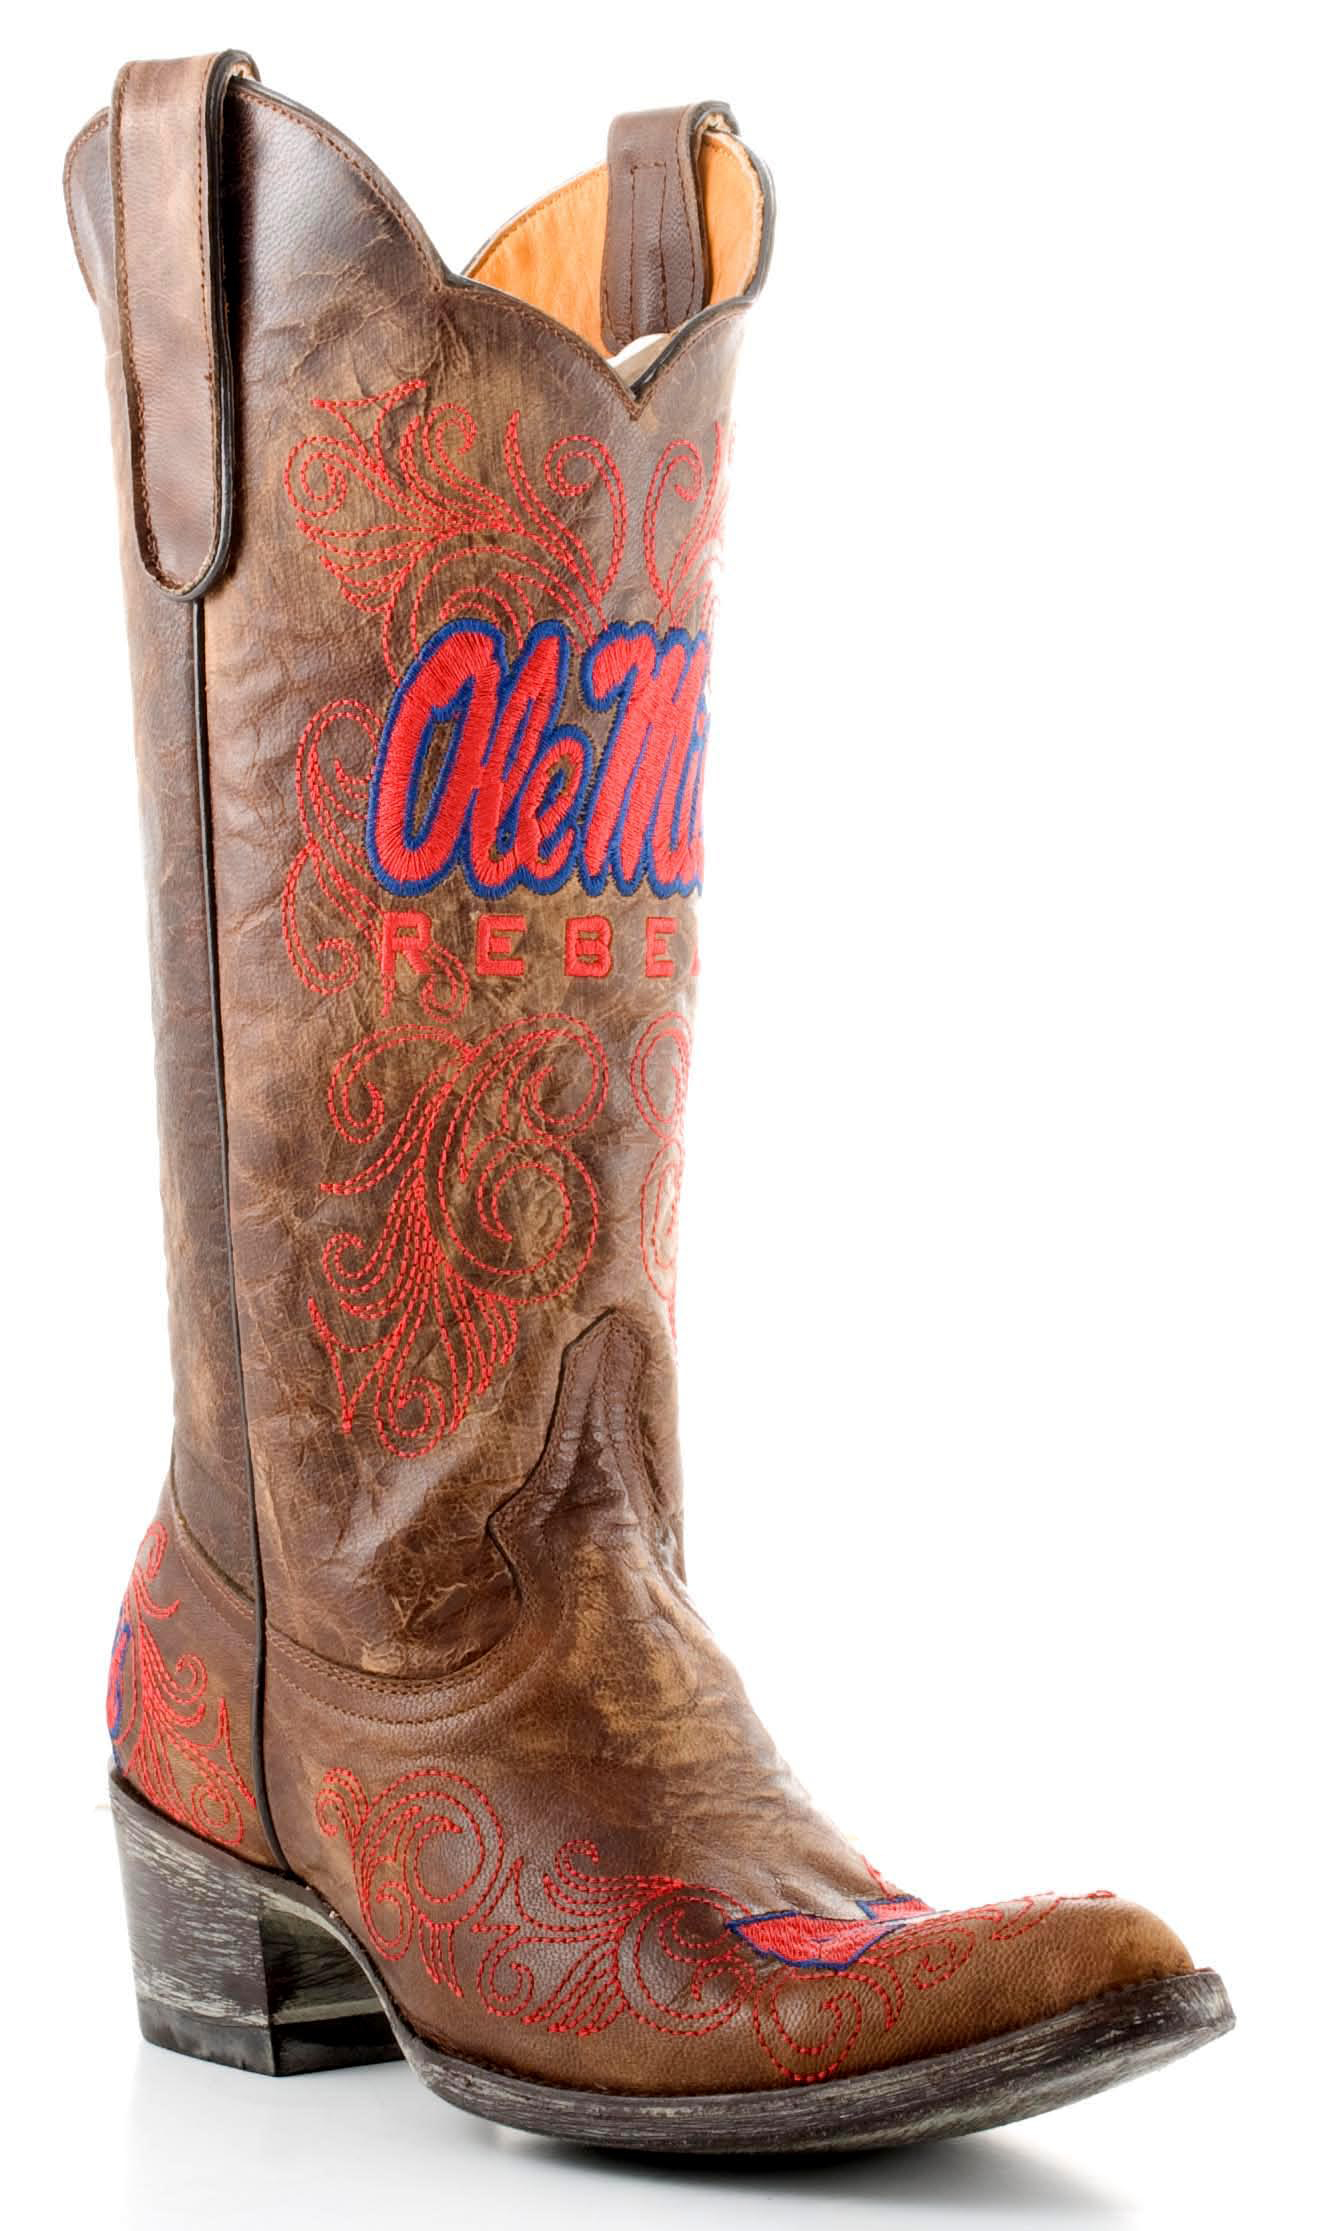 Gameday Boots Womens College Team Mississippi Rebels Brass MS-L018-1 by GameDay Boots